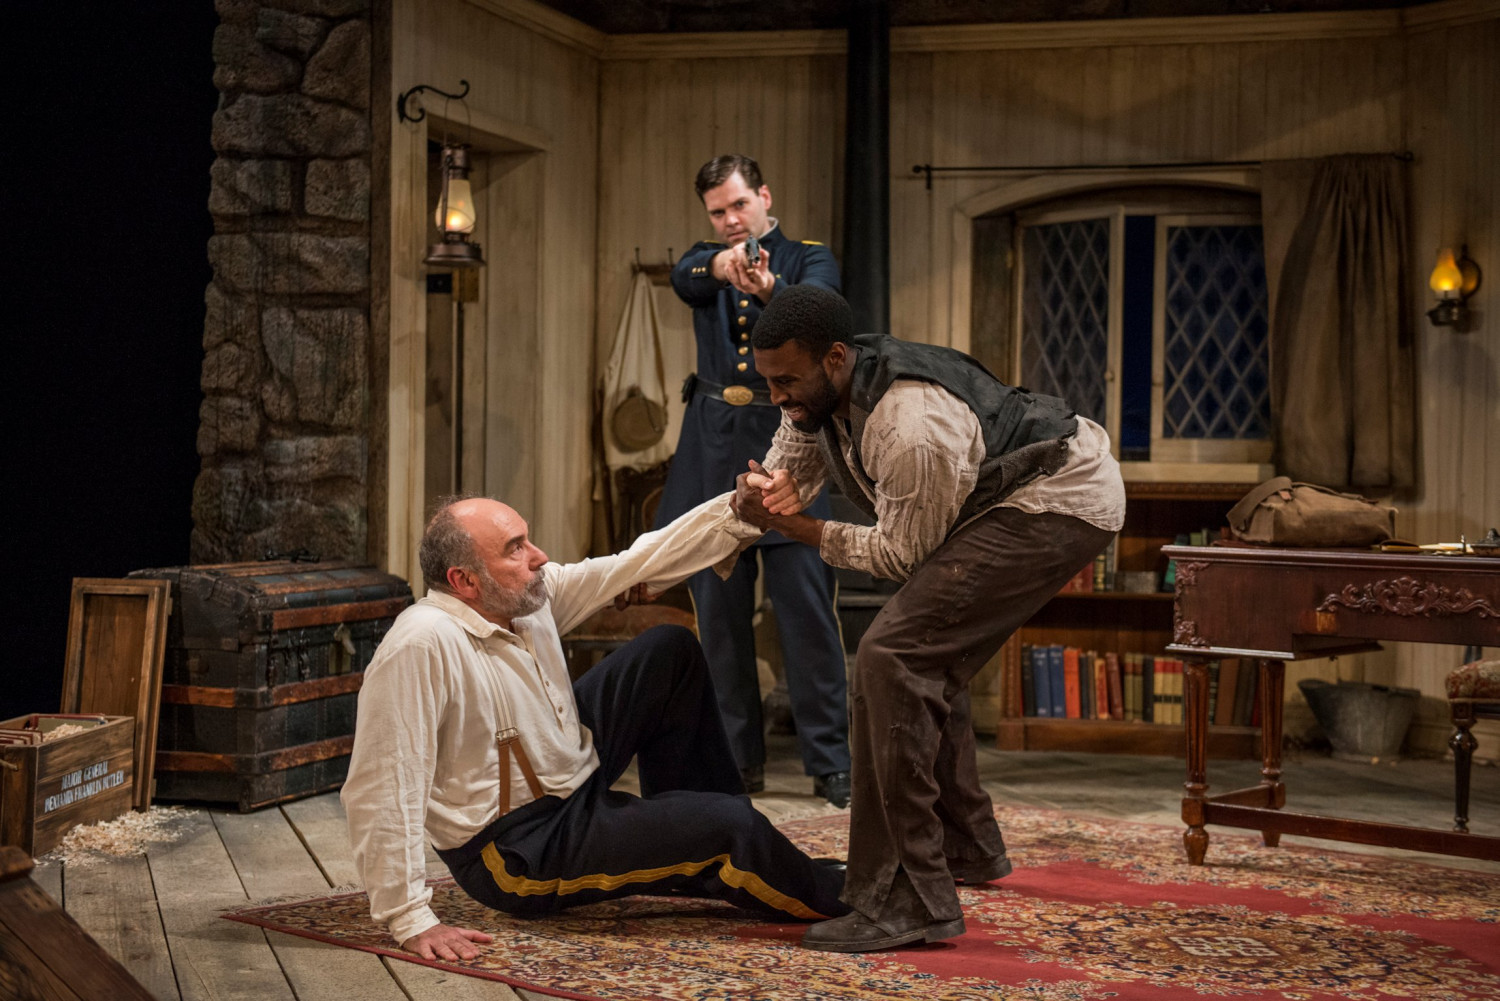 BUTLER Stirs Up Ugliness of America in Civil War Comedy